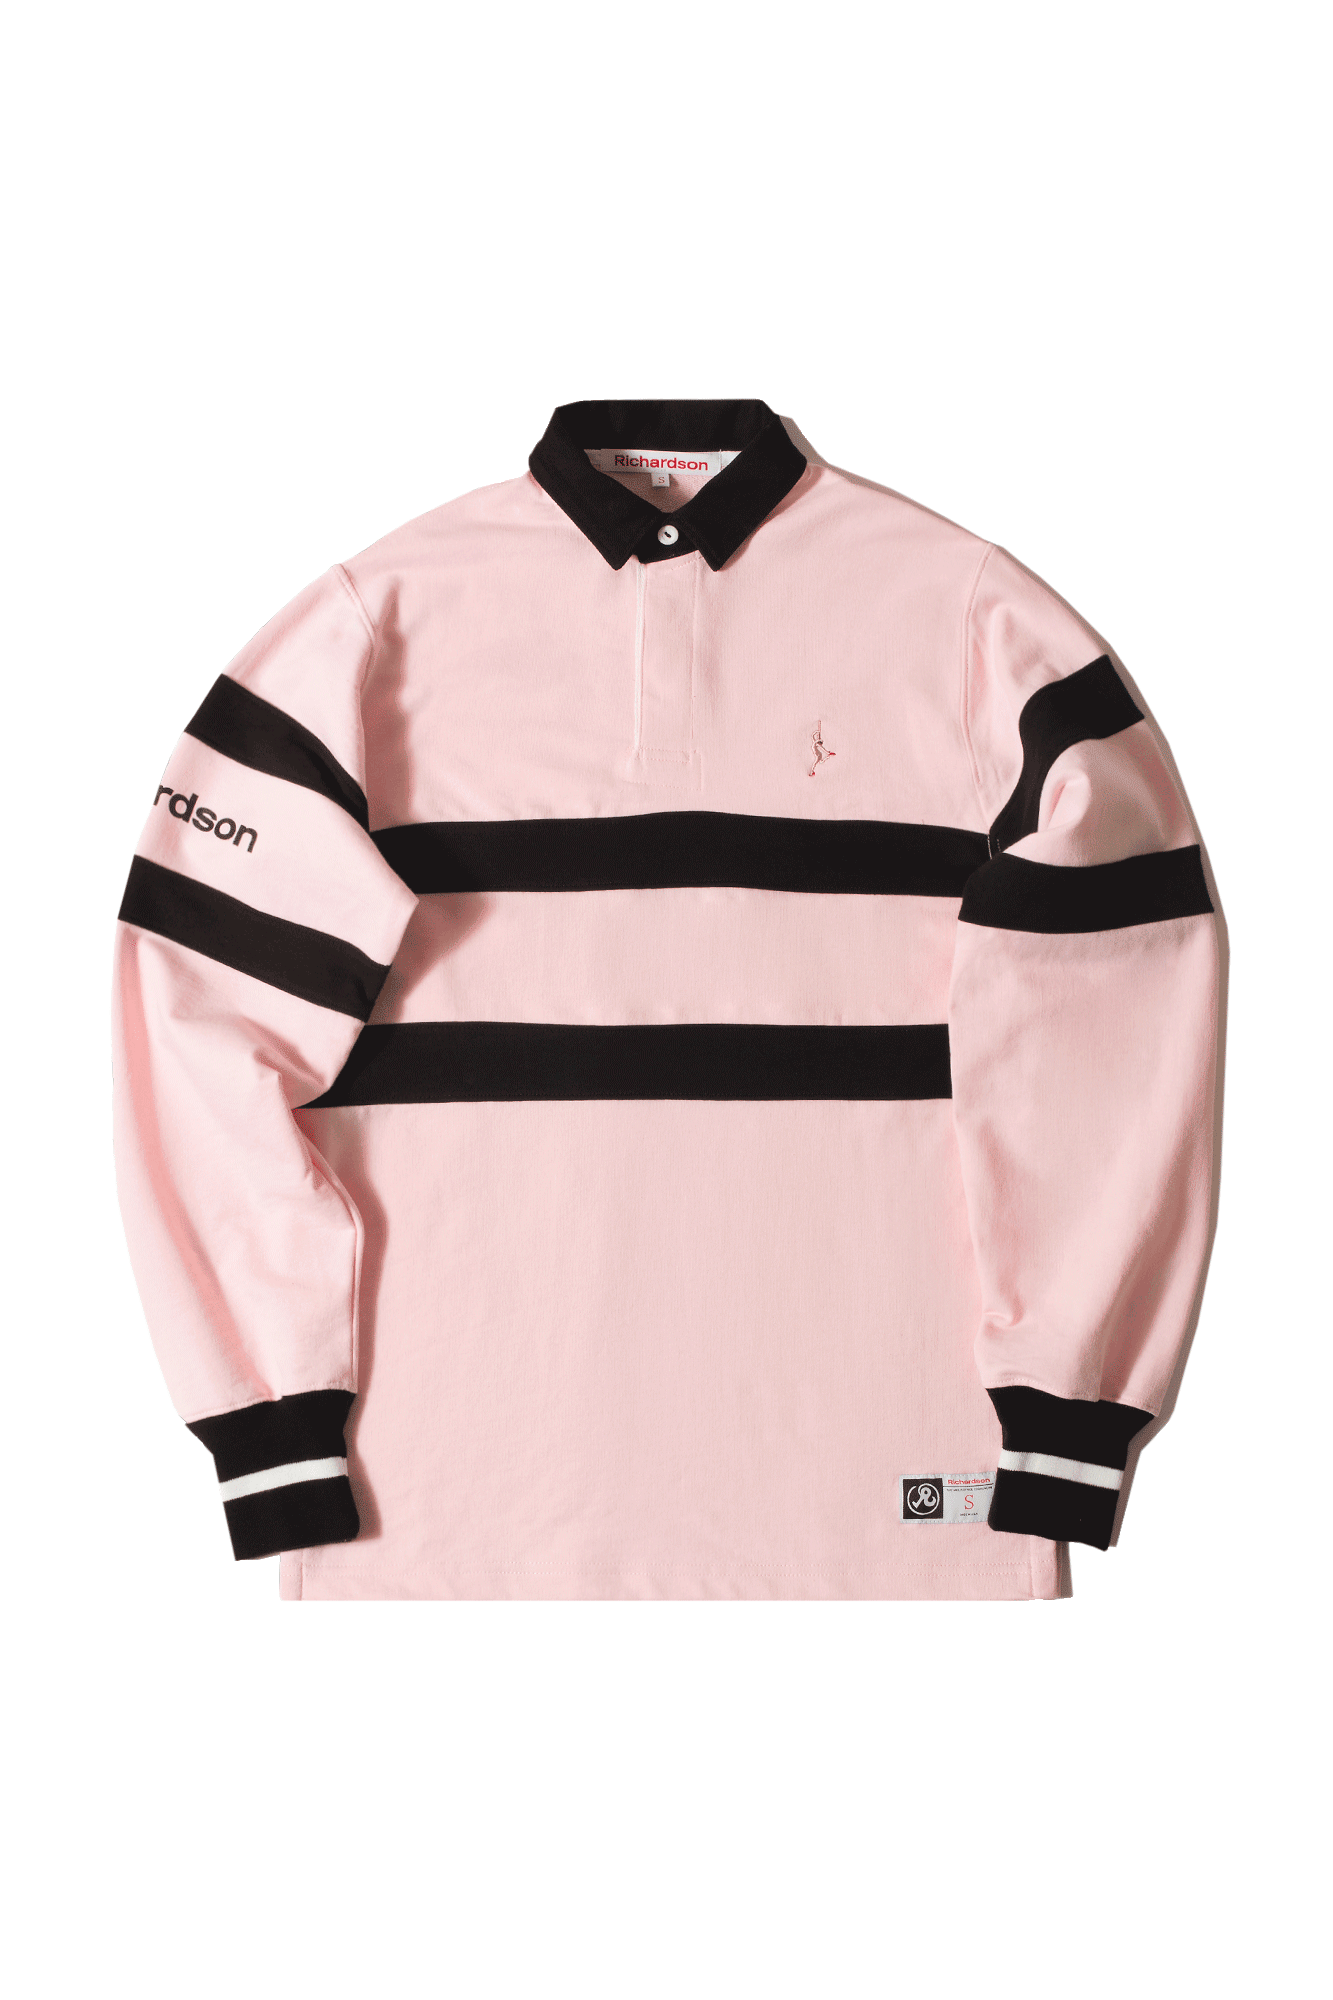 Richardson Mag Polo Cotton Rugby Shirt Rosa 6105100000#000#PINK#S - One Block Down